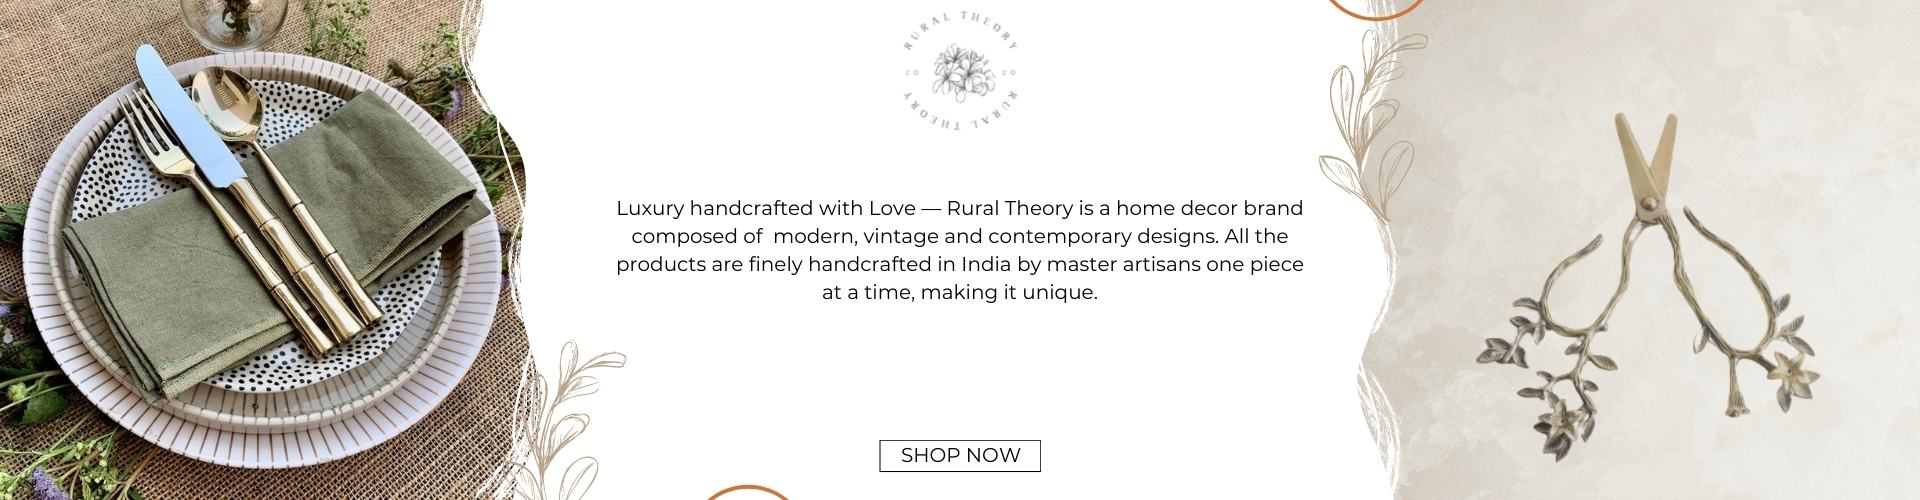 Rural Theory